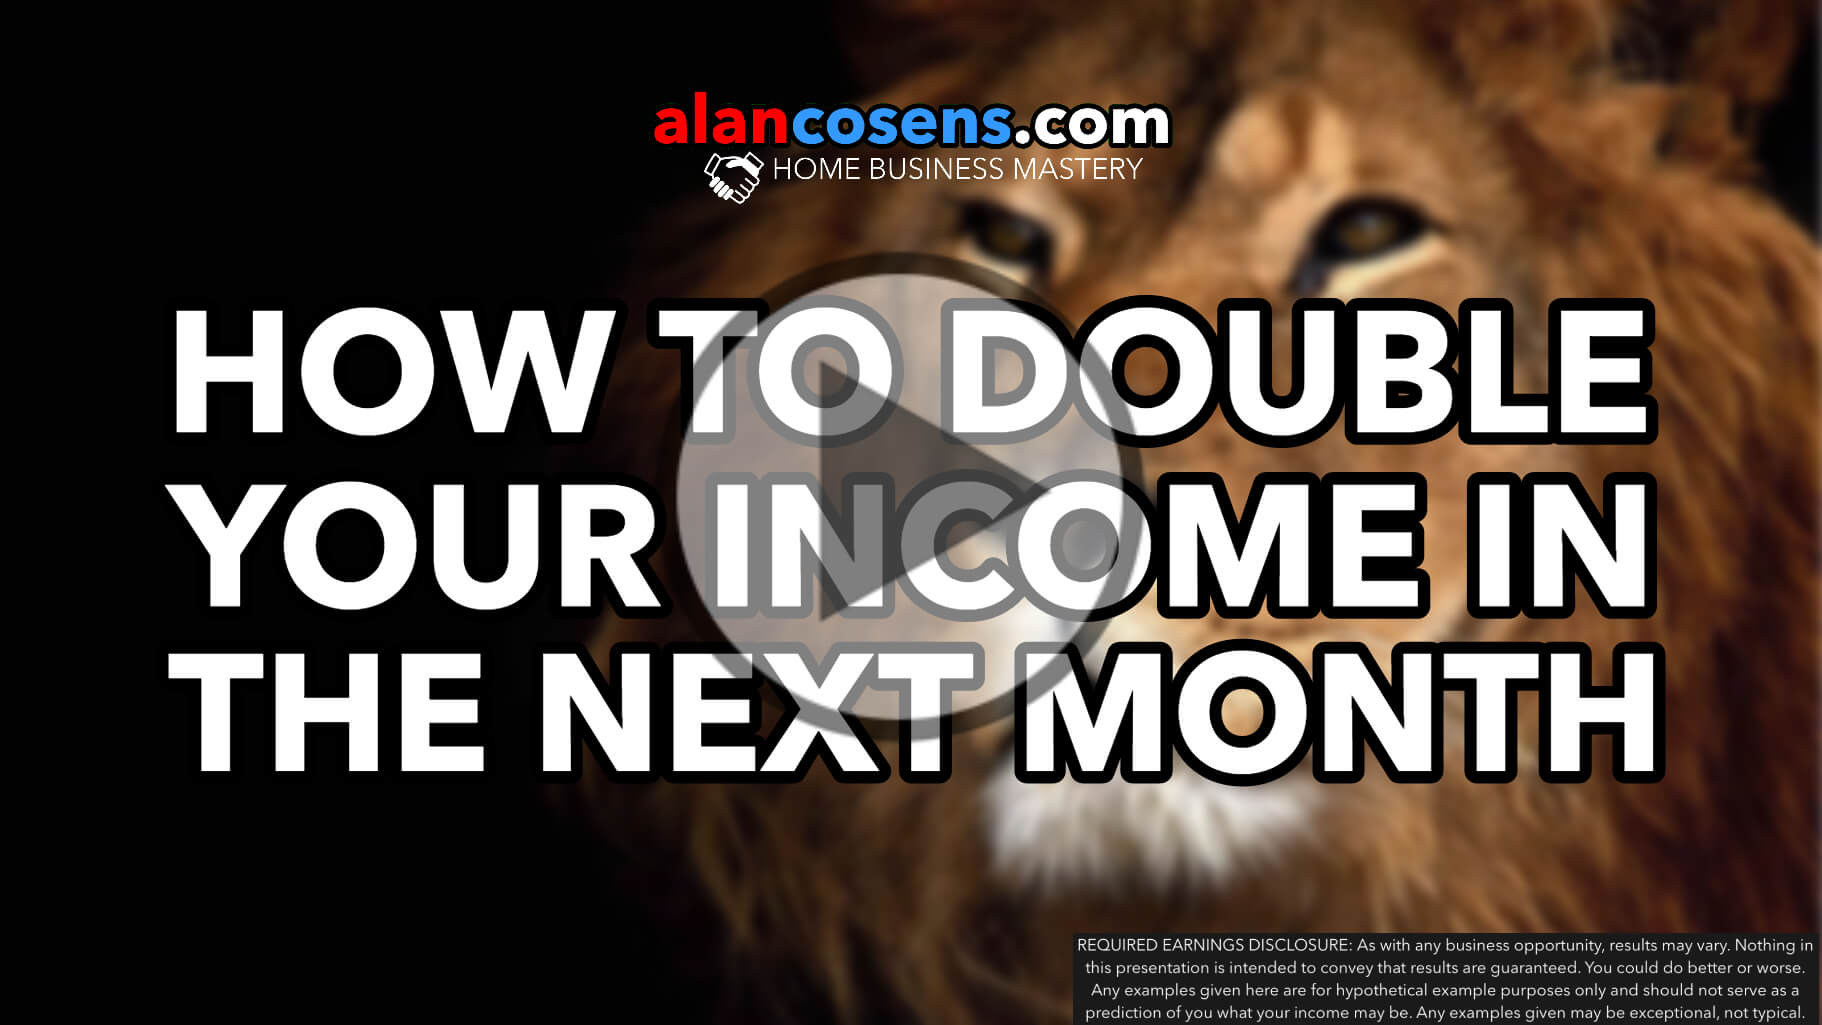 How To Double Your Income In The Next Month